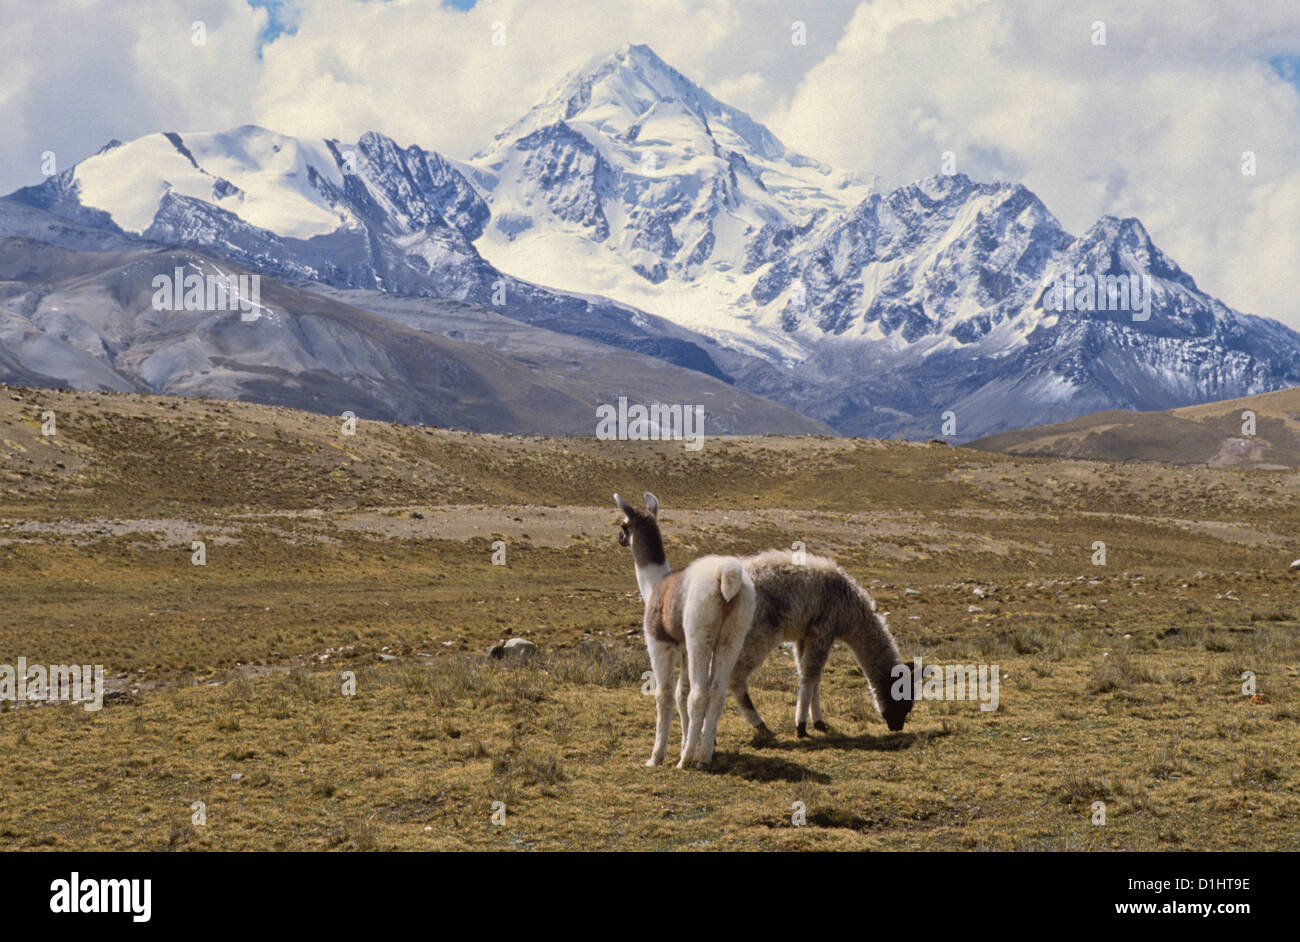 Llamas And Alpacas In The Andes Mountains Of Bolivia Stock Photo - Where are the andes mountains